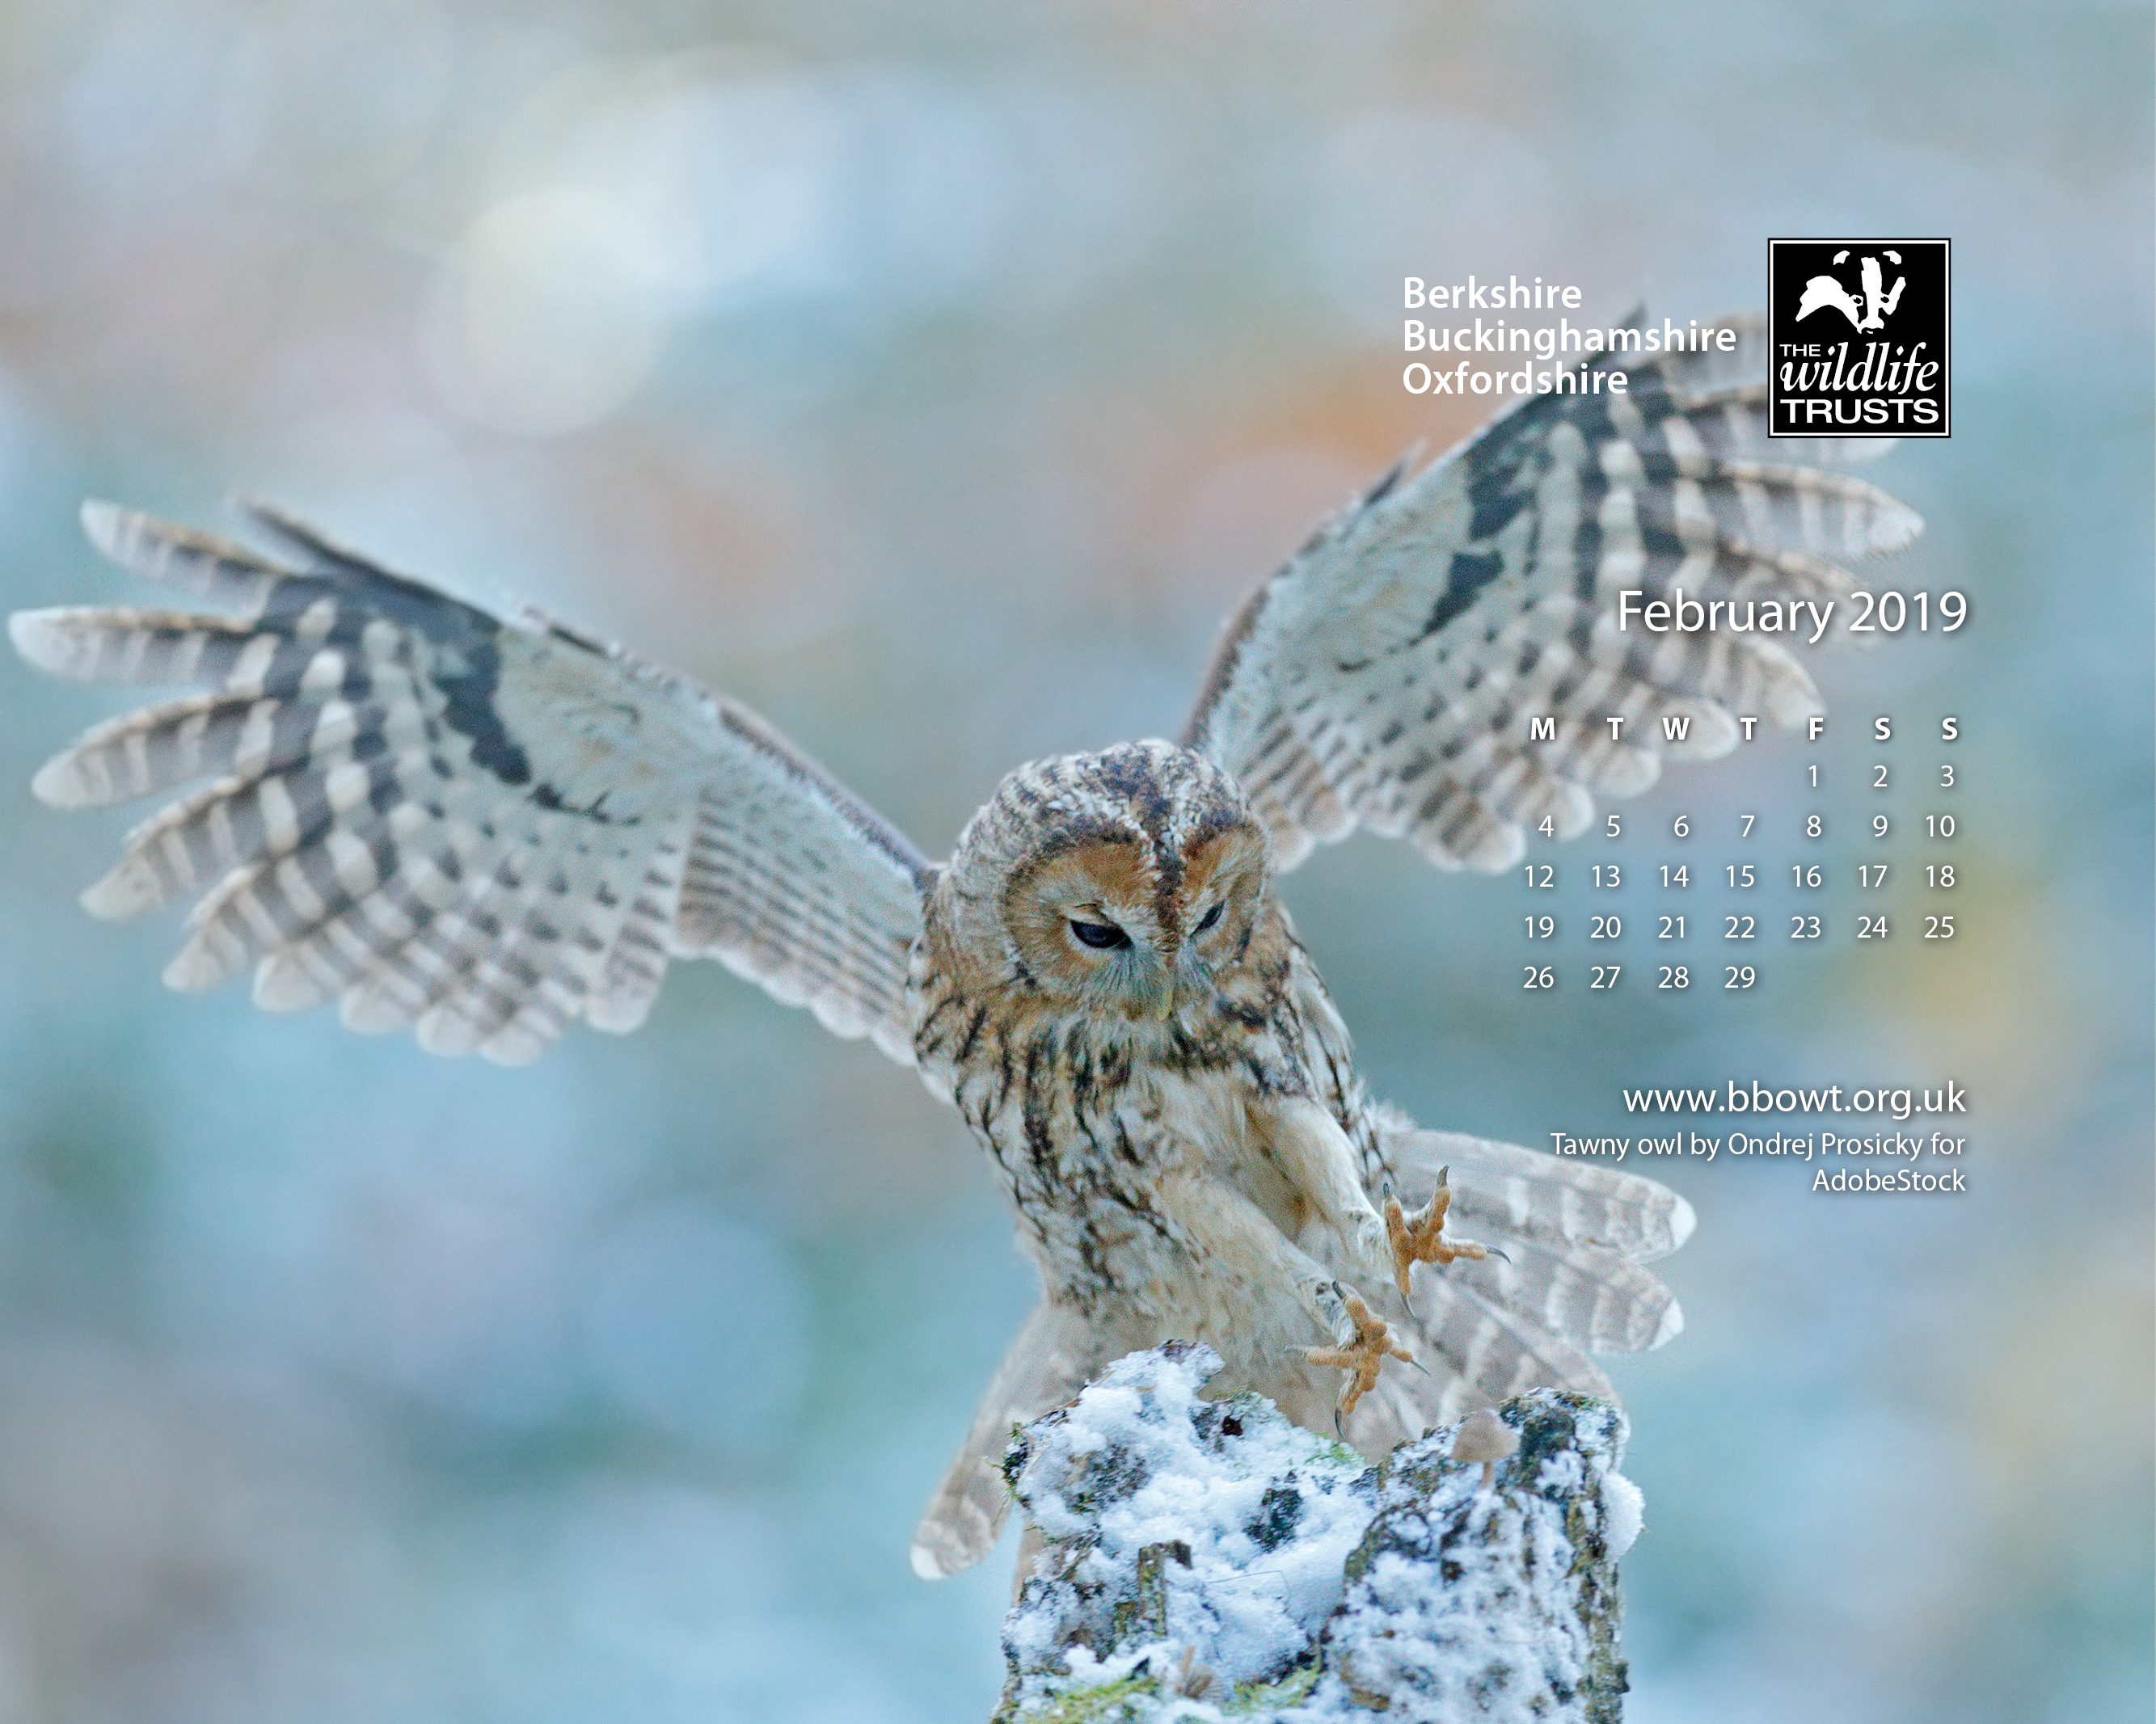 February wallpaper 1280 by 1024